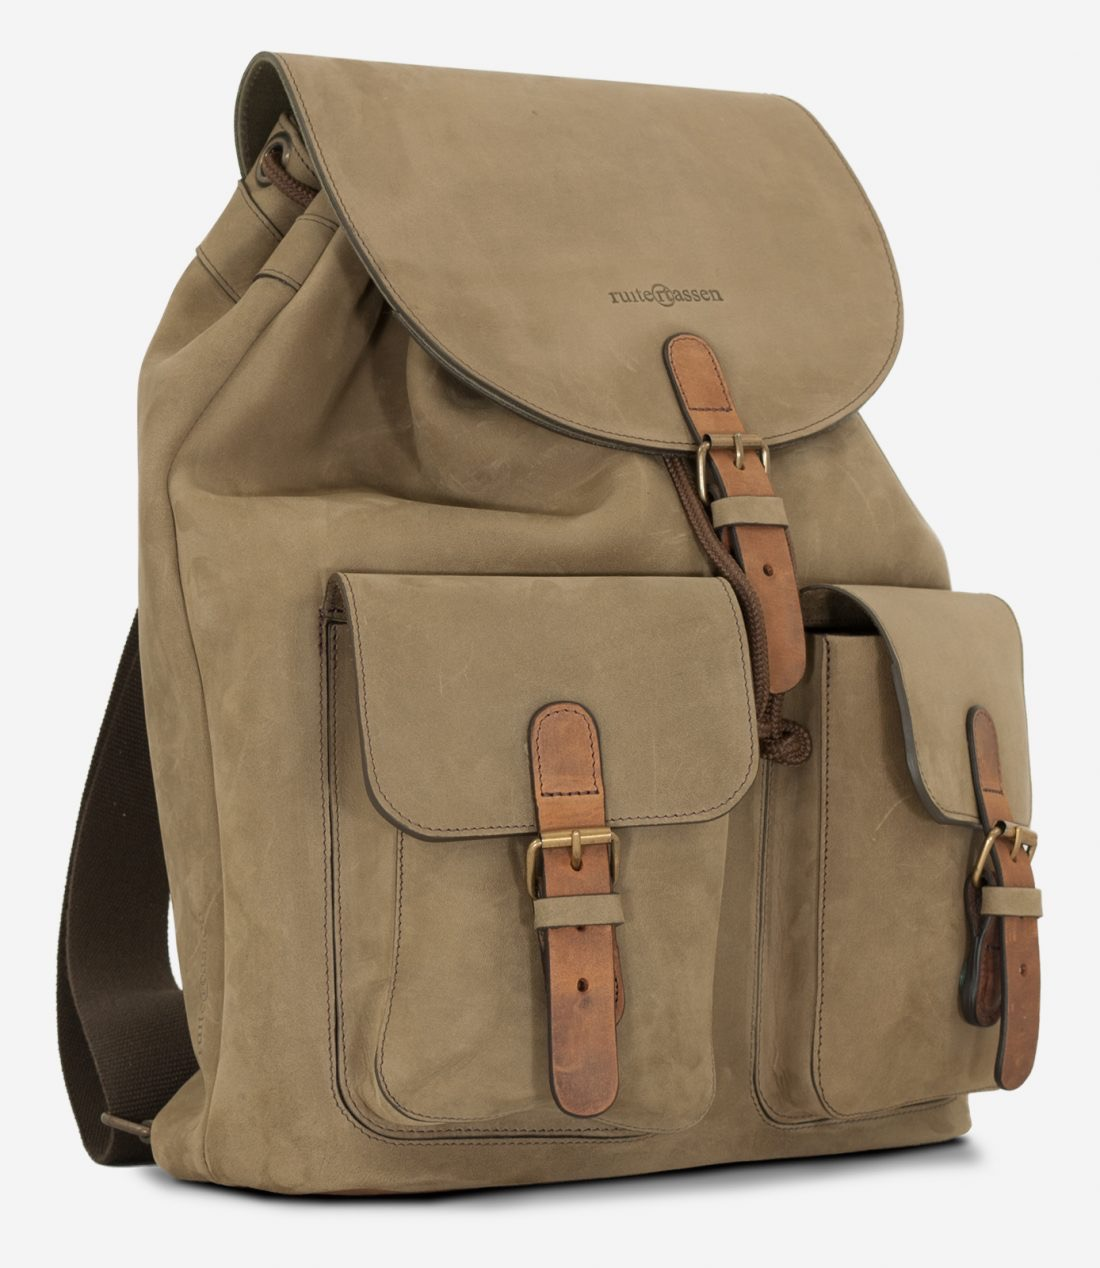 Side view of the handmade soft leather backpack.